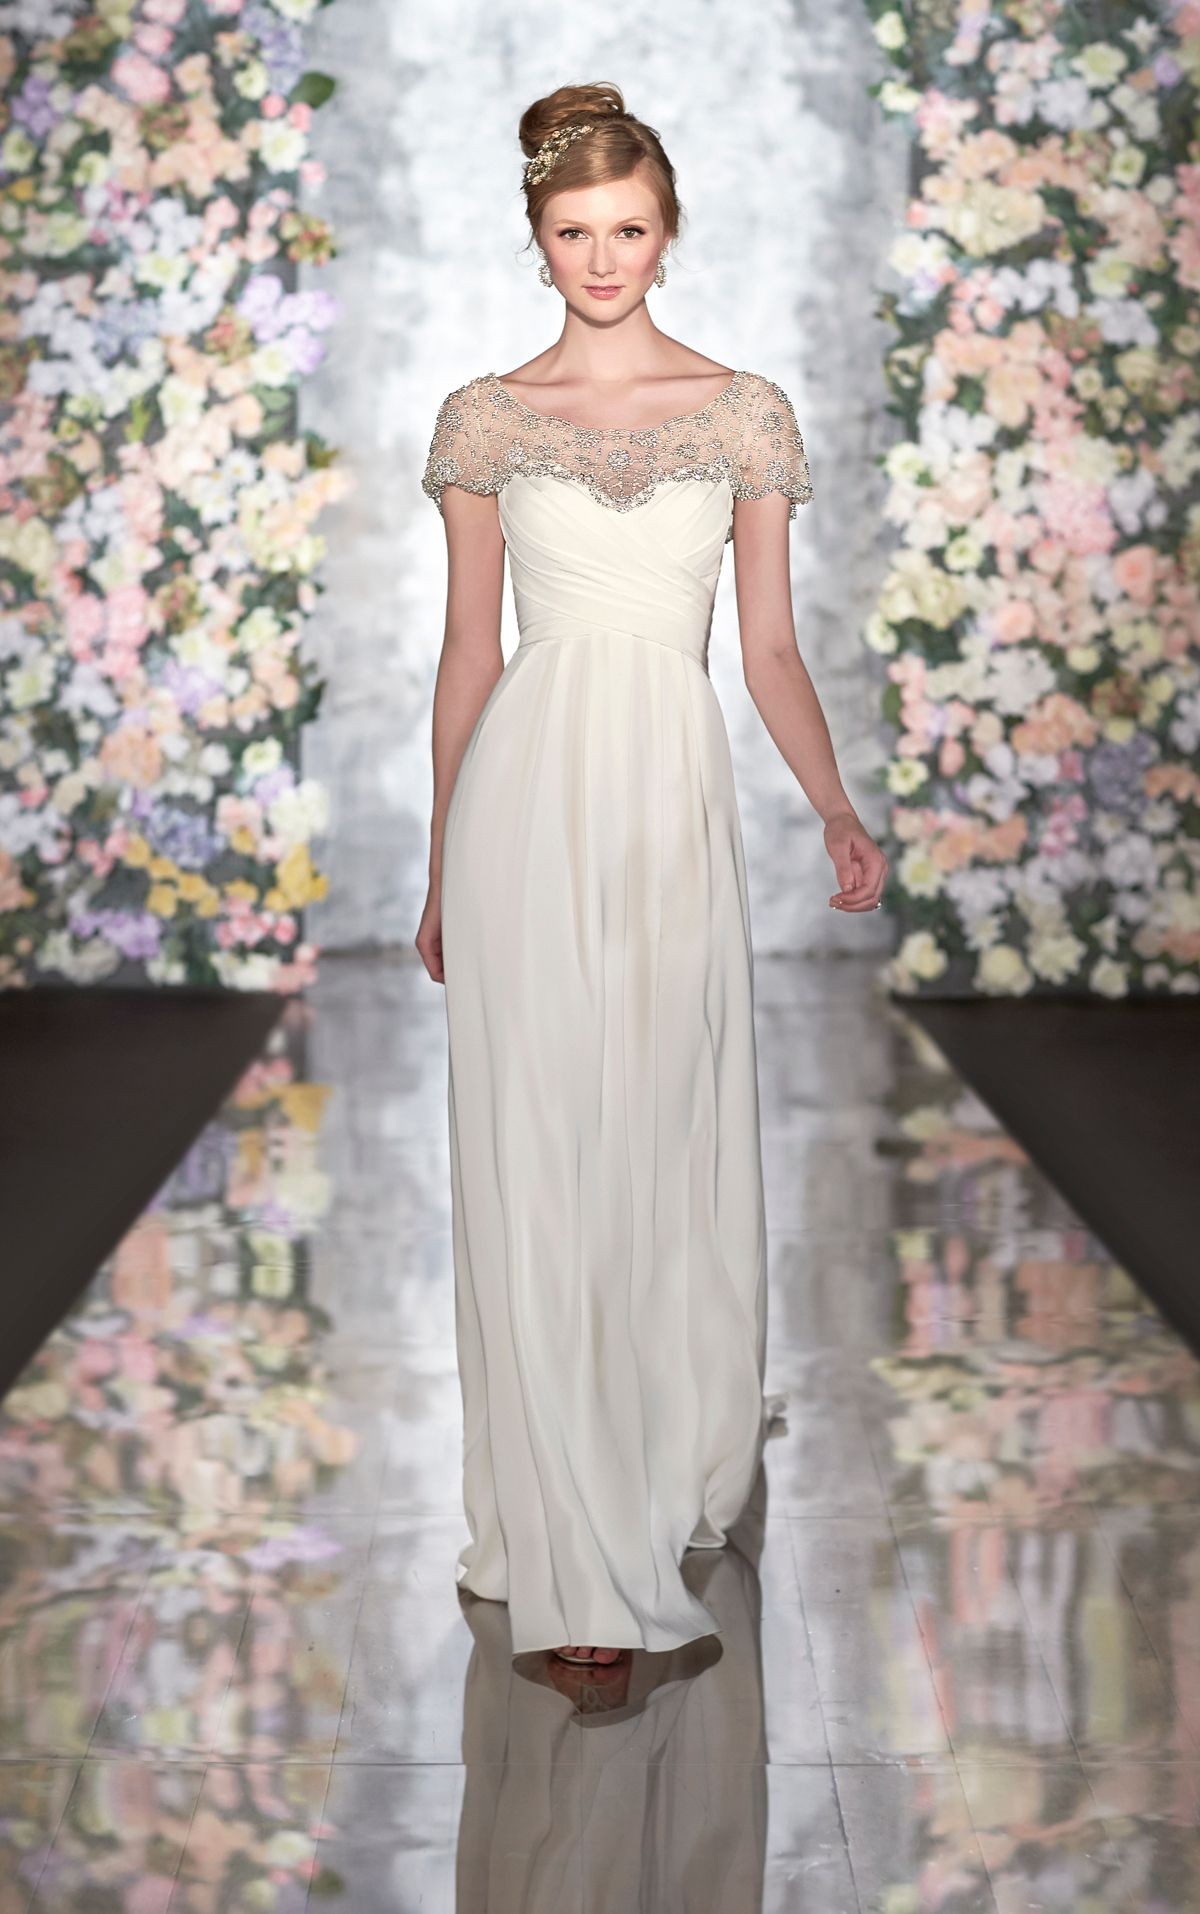 Great gatsby inspired wedding dresses   us Great Gatsby and Downton Abbey Inspired Wedding Dresses